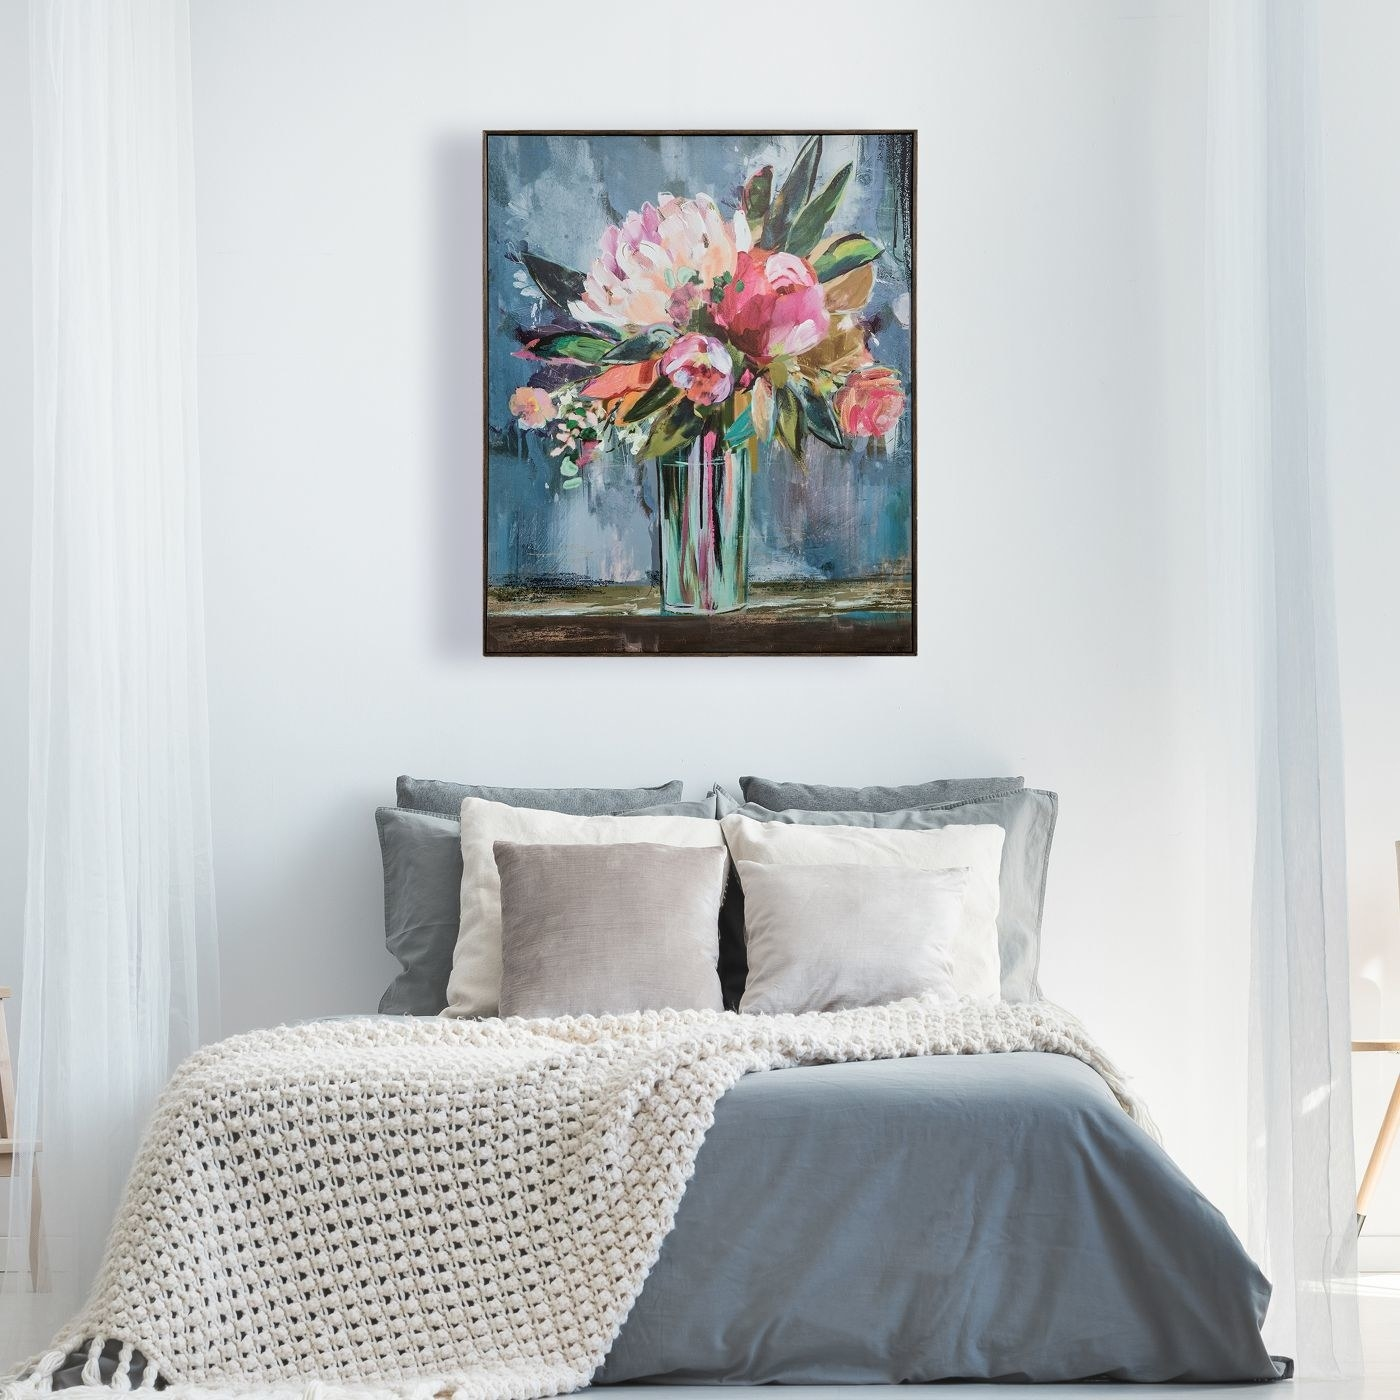 A floral framed wall canvas above a bed